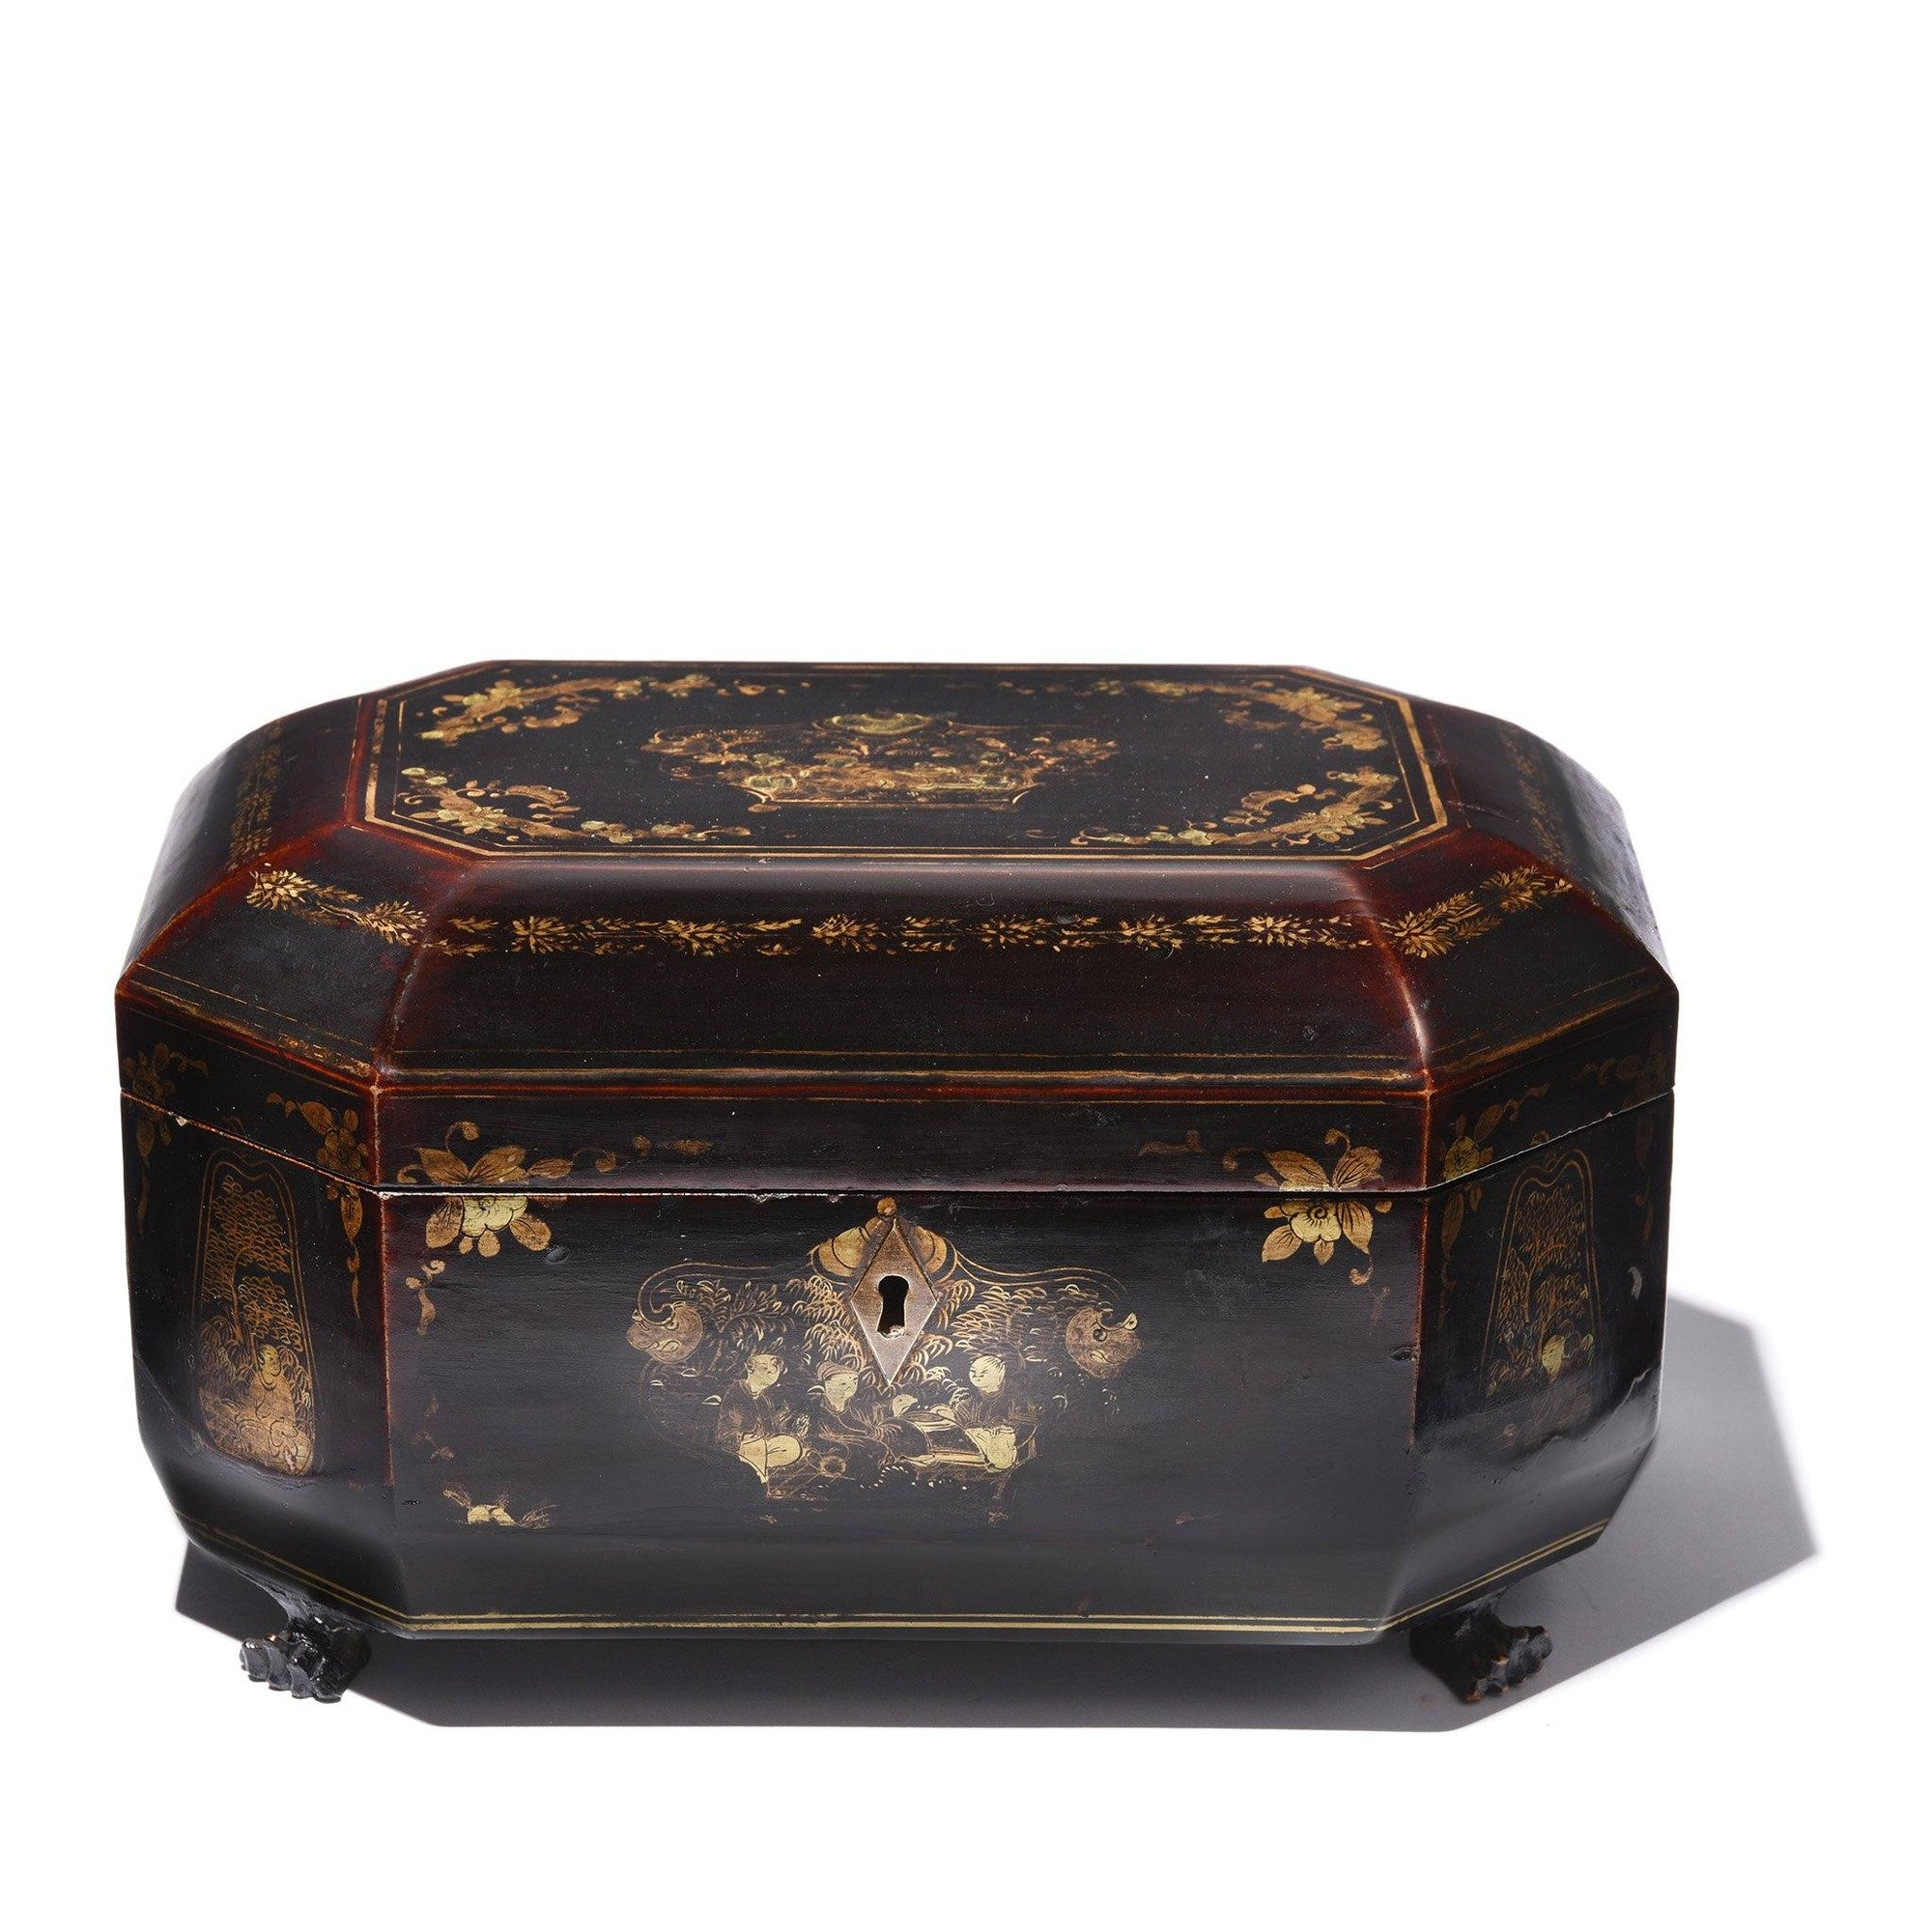 Black Lacquer Chinese Export Tea Caddy - Qing Dynasty, Early 19thC | Indigo Antiques